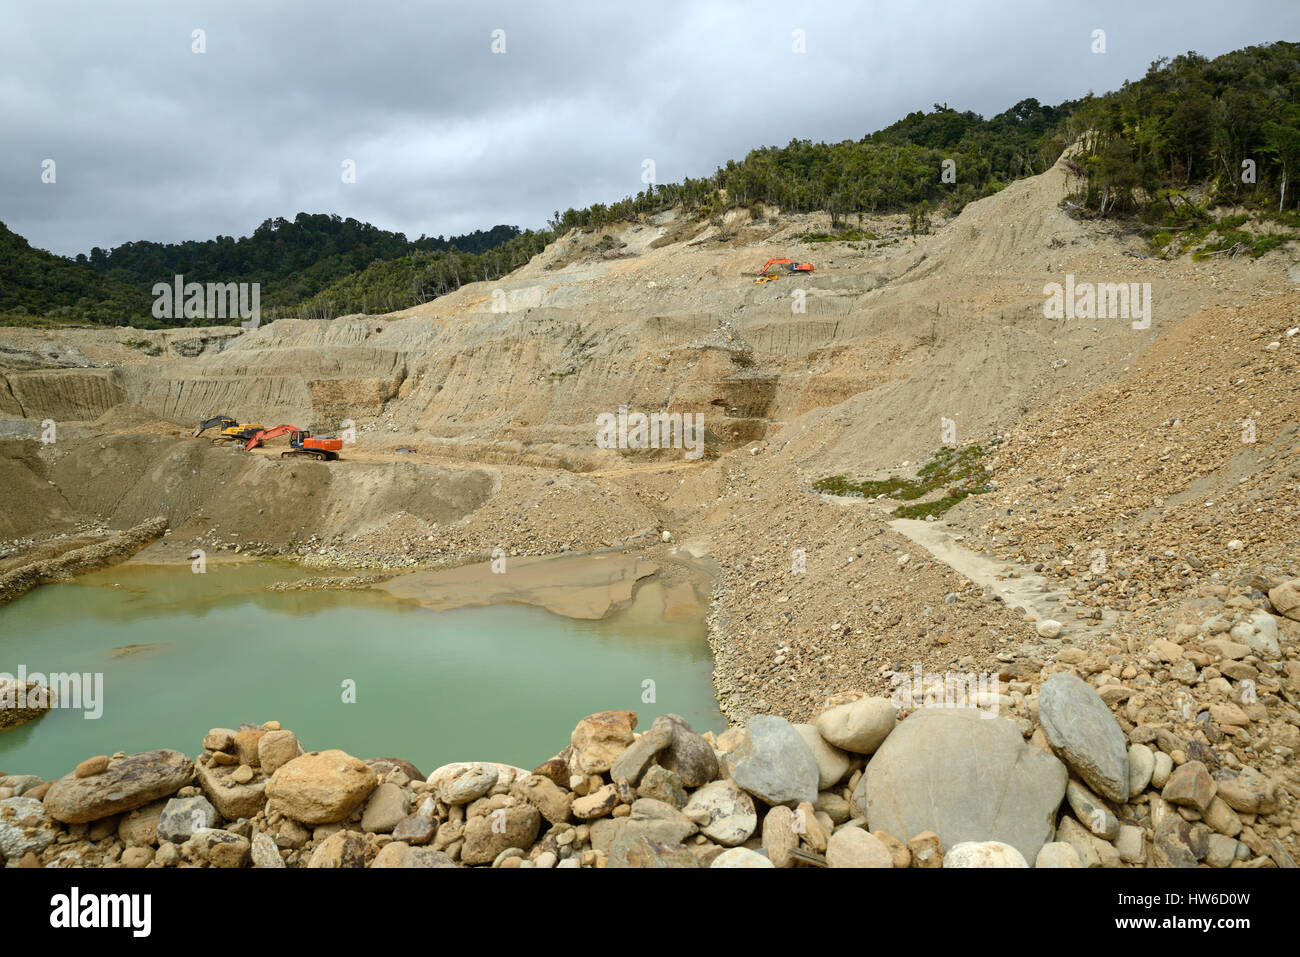 A digger clears overburden at an open cast mine to reach the gold-bearing paydirt below. Stock Photo